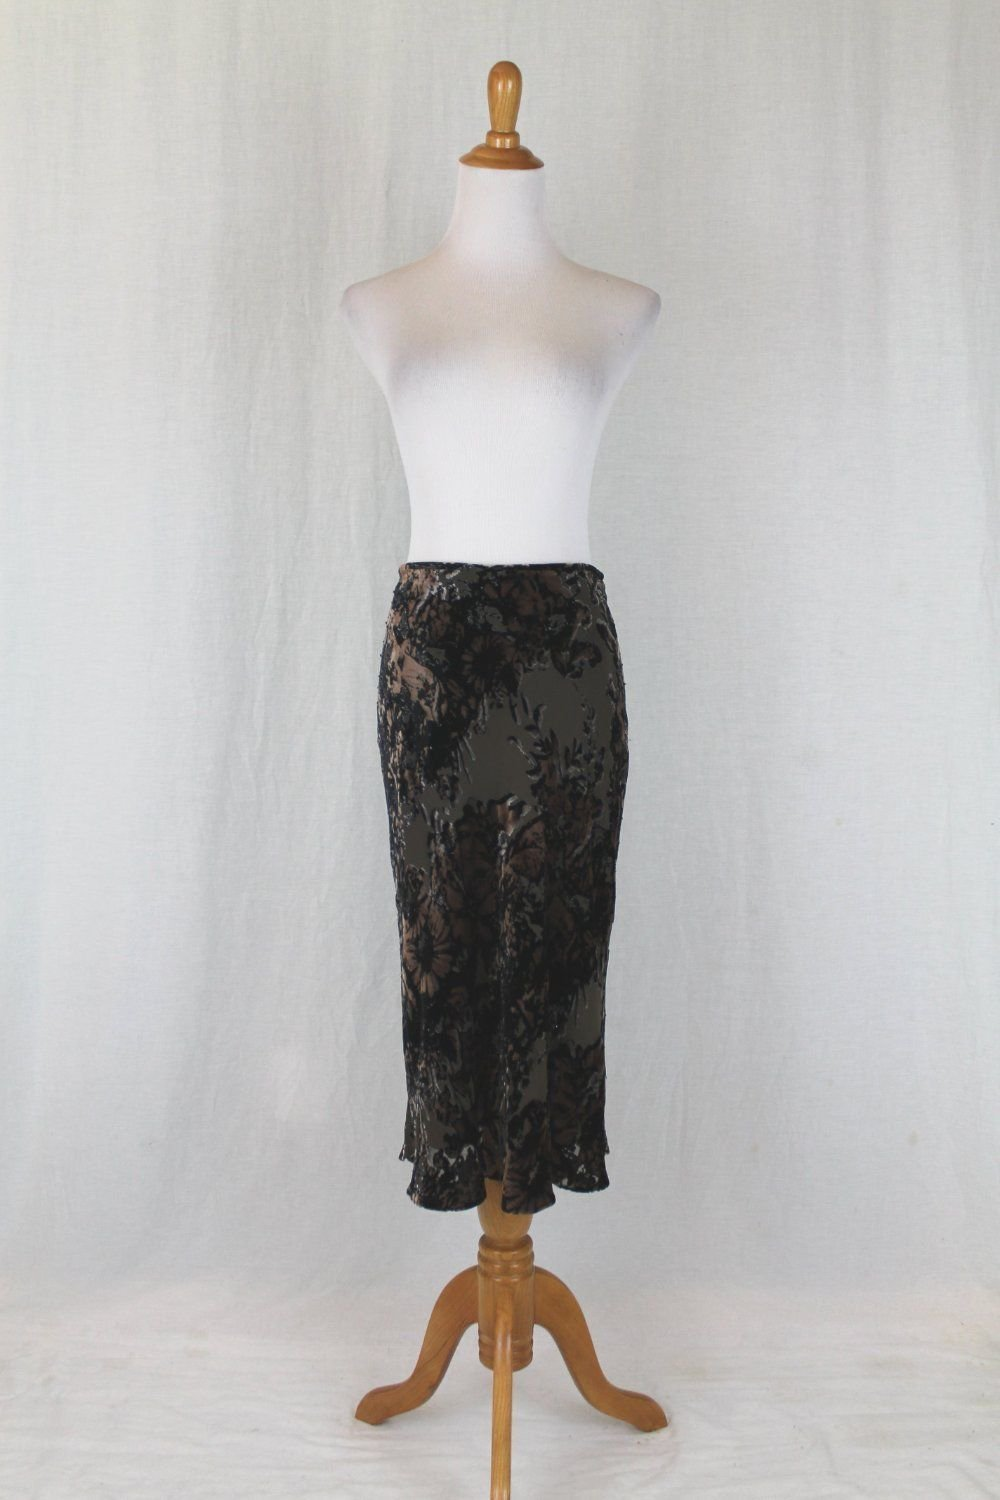 Adrianna Papell Beaded Burned Velvet Bias Cut Mid Calf Skirt Olive Brown Black 4